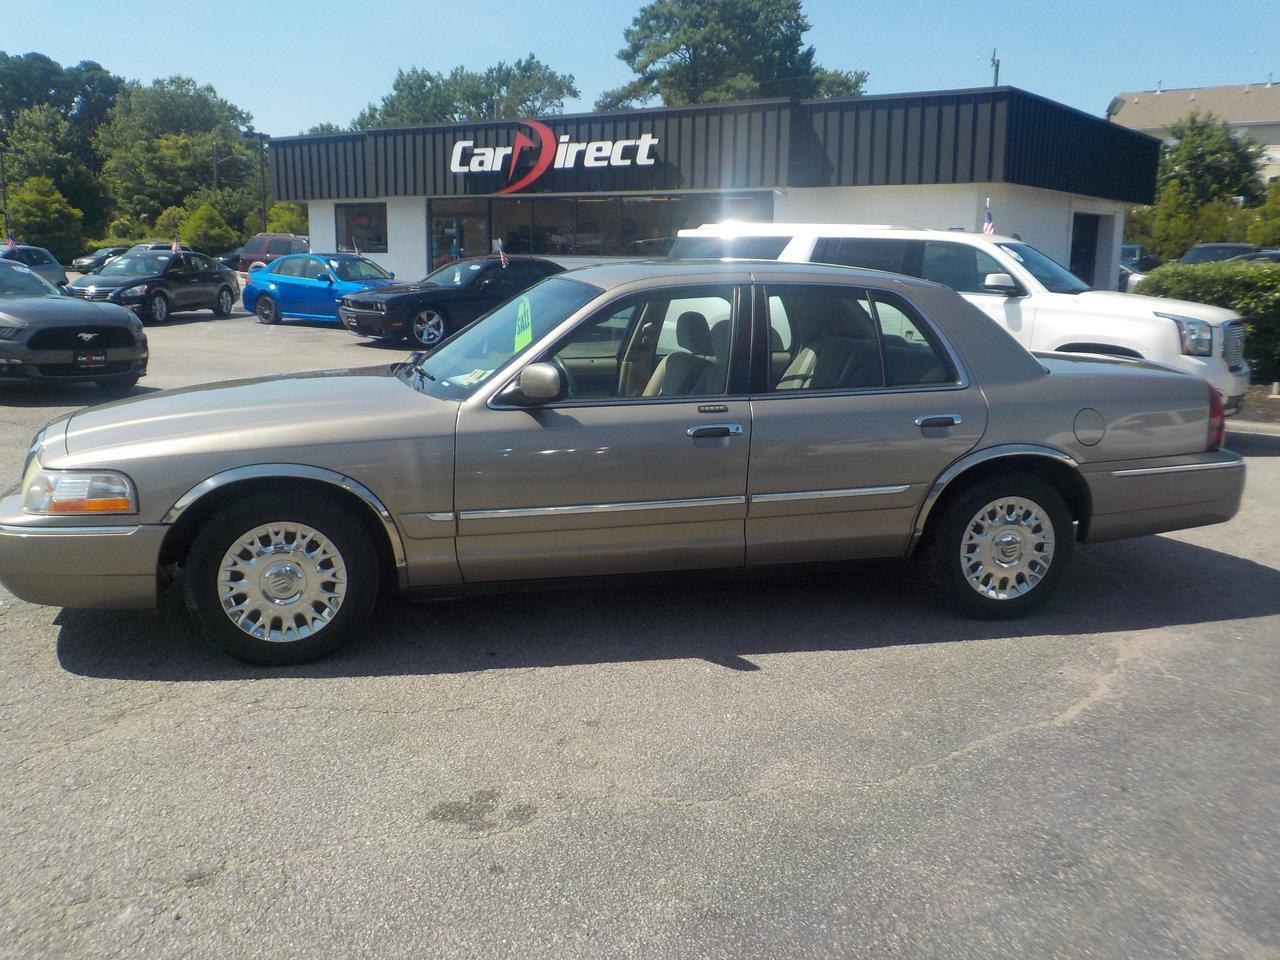 2003 MERCURY GRAND MARQUIS GS, WHOLESALE TO THE PUBLIC GET IT BEFORE IT GOES TO AUCTION, CD PLAYER, A/C!!